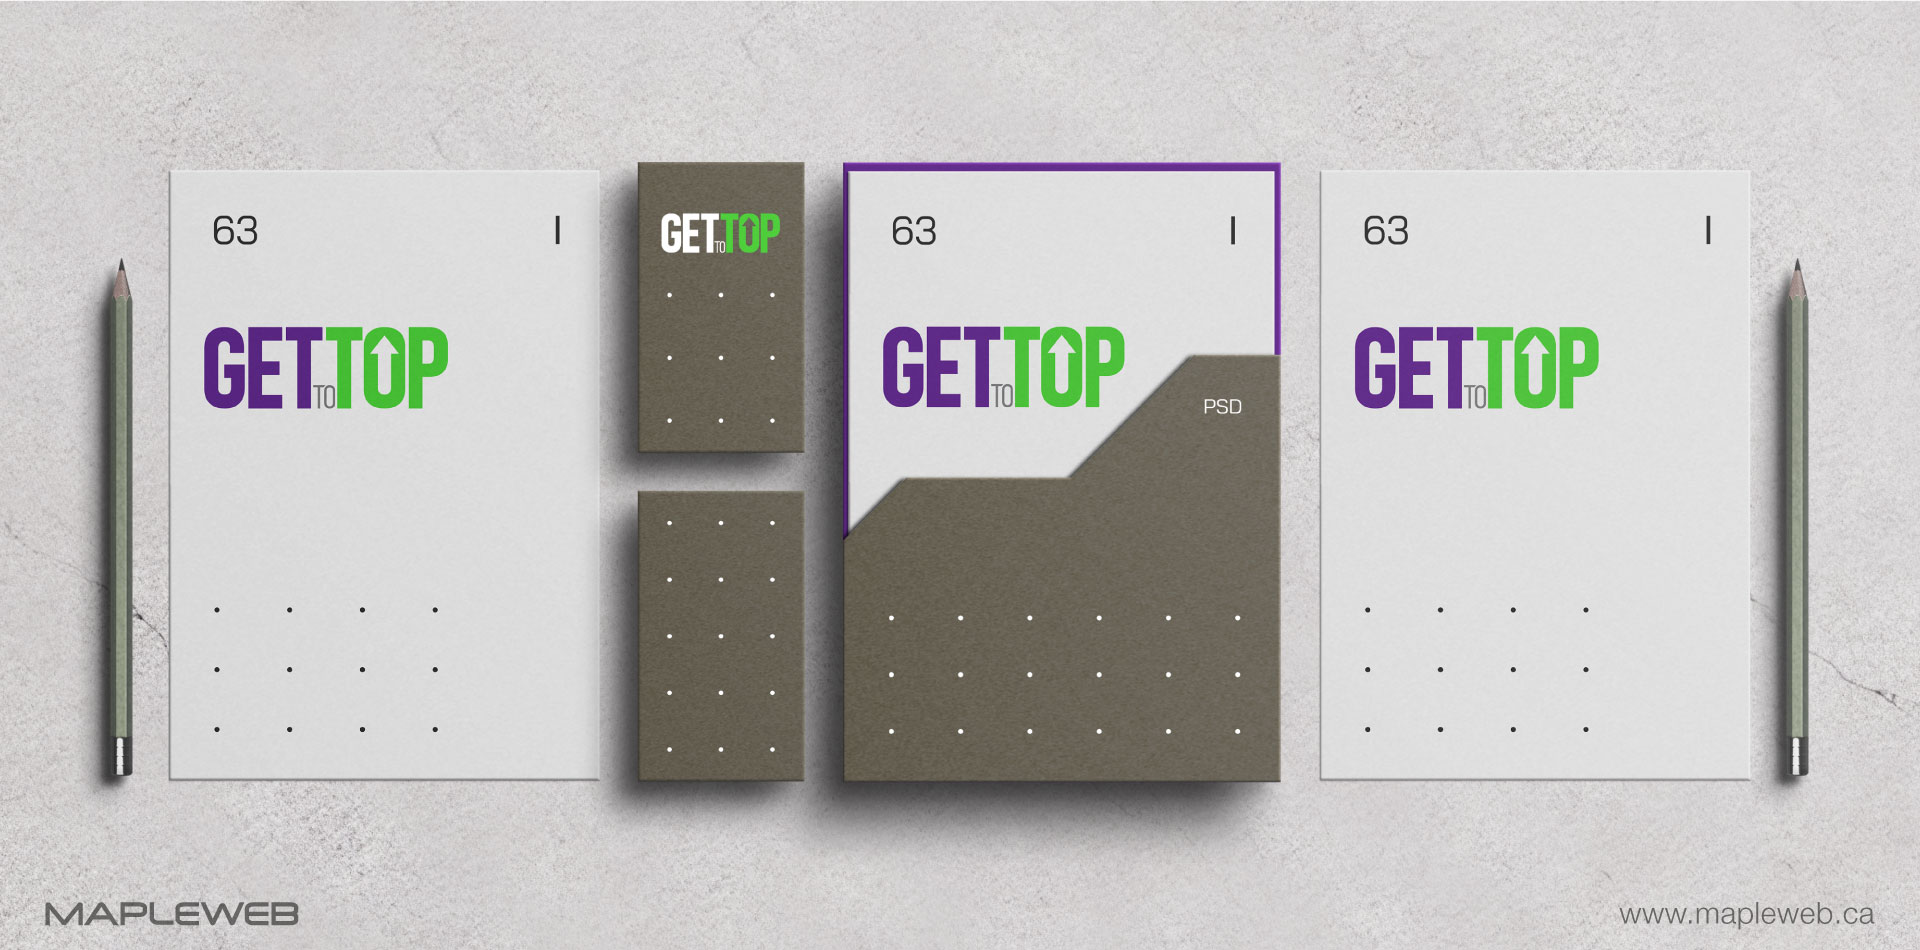 gettotop-brand-logo-design-by-mapleweb-vancouver-canada-stationery-mock